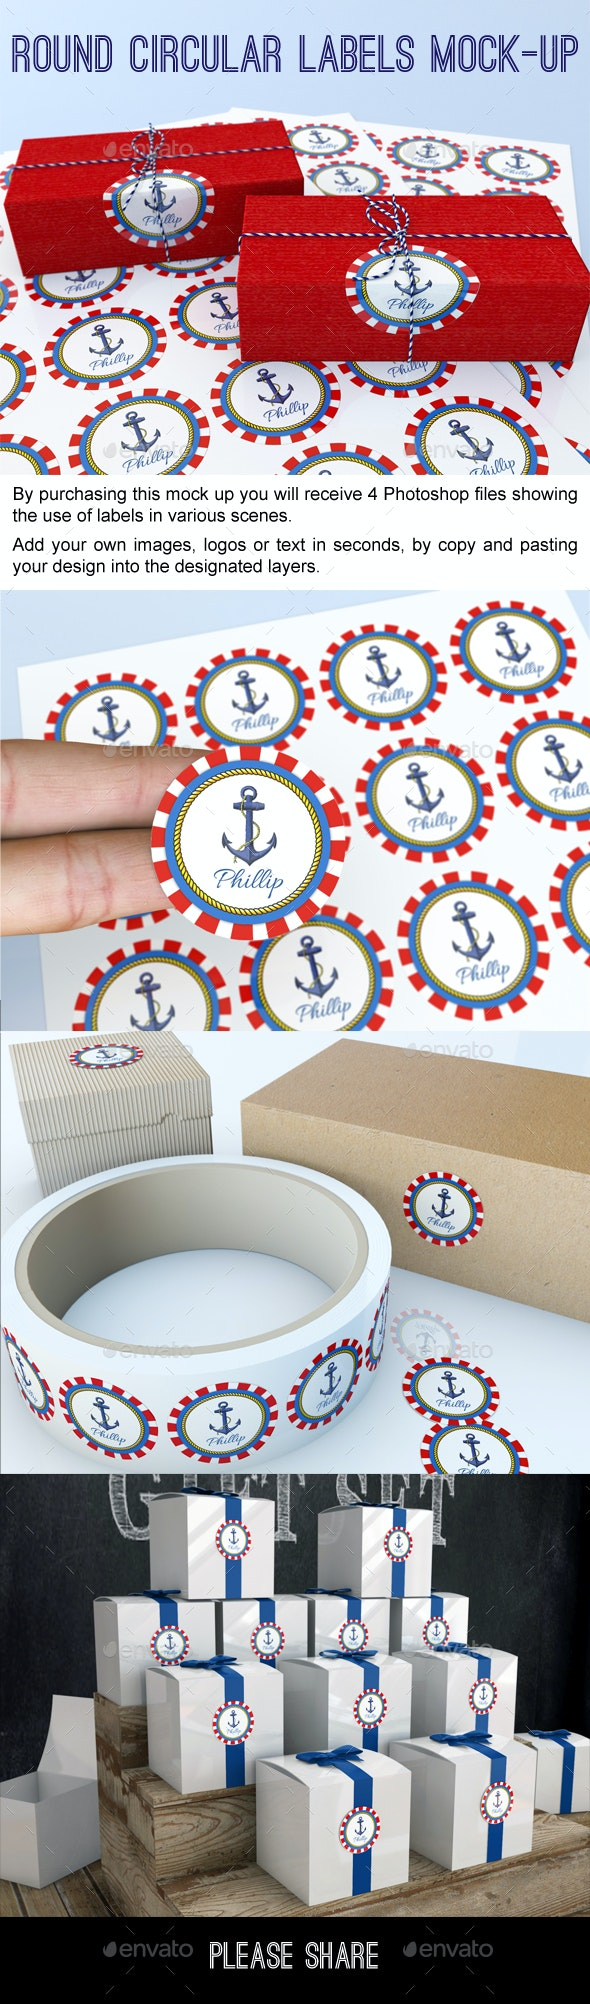 Round circular labels and stickers mock up signage print